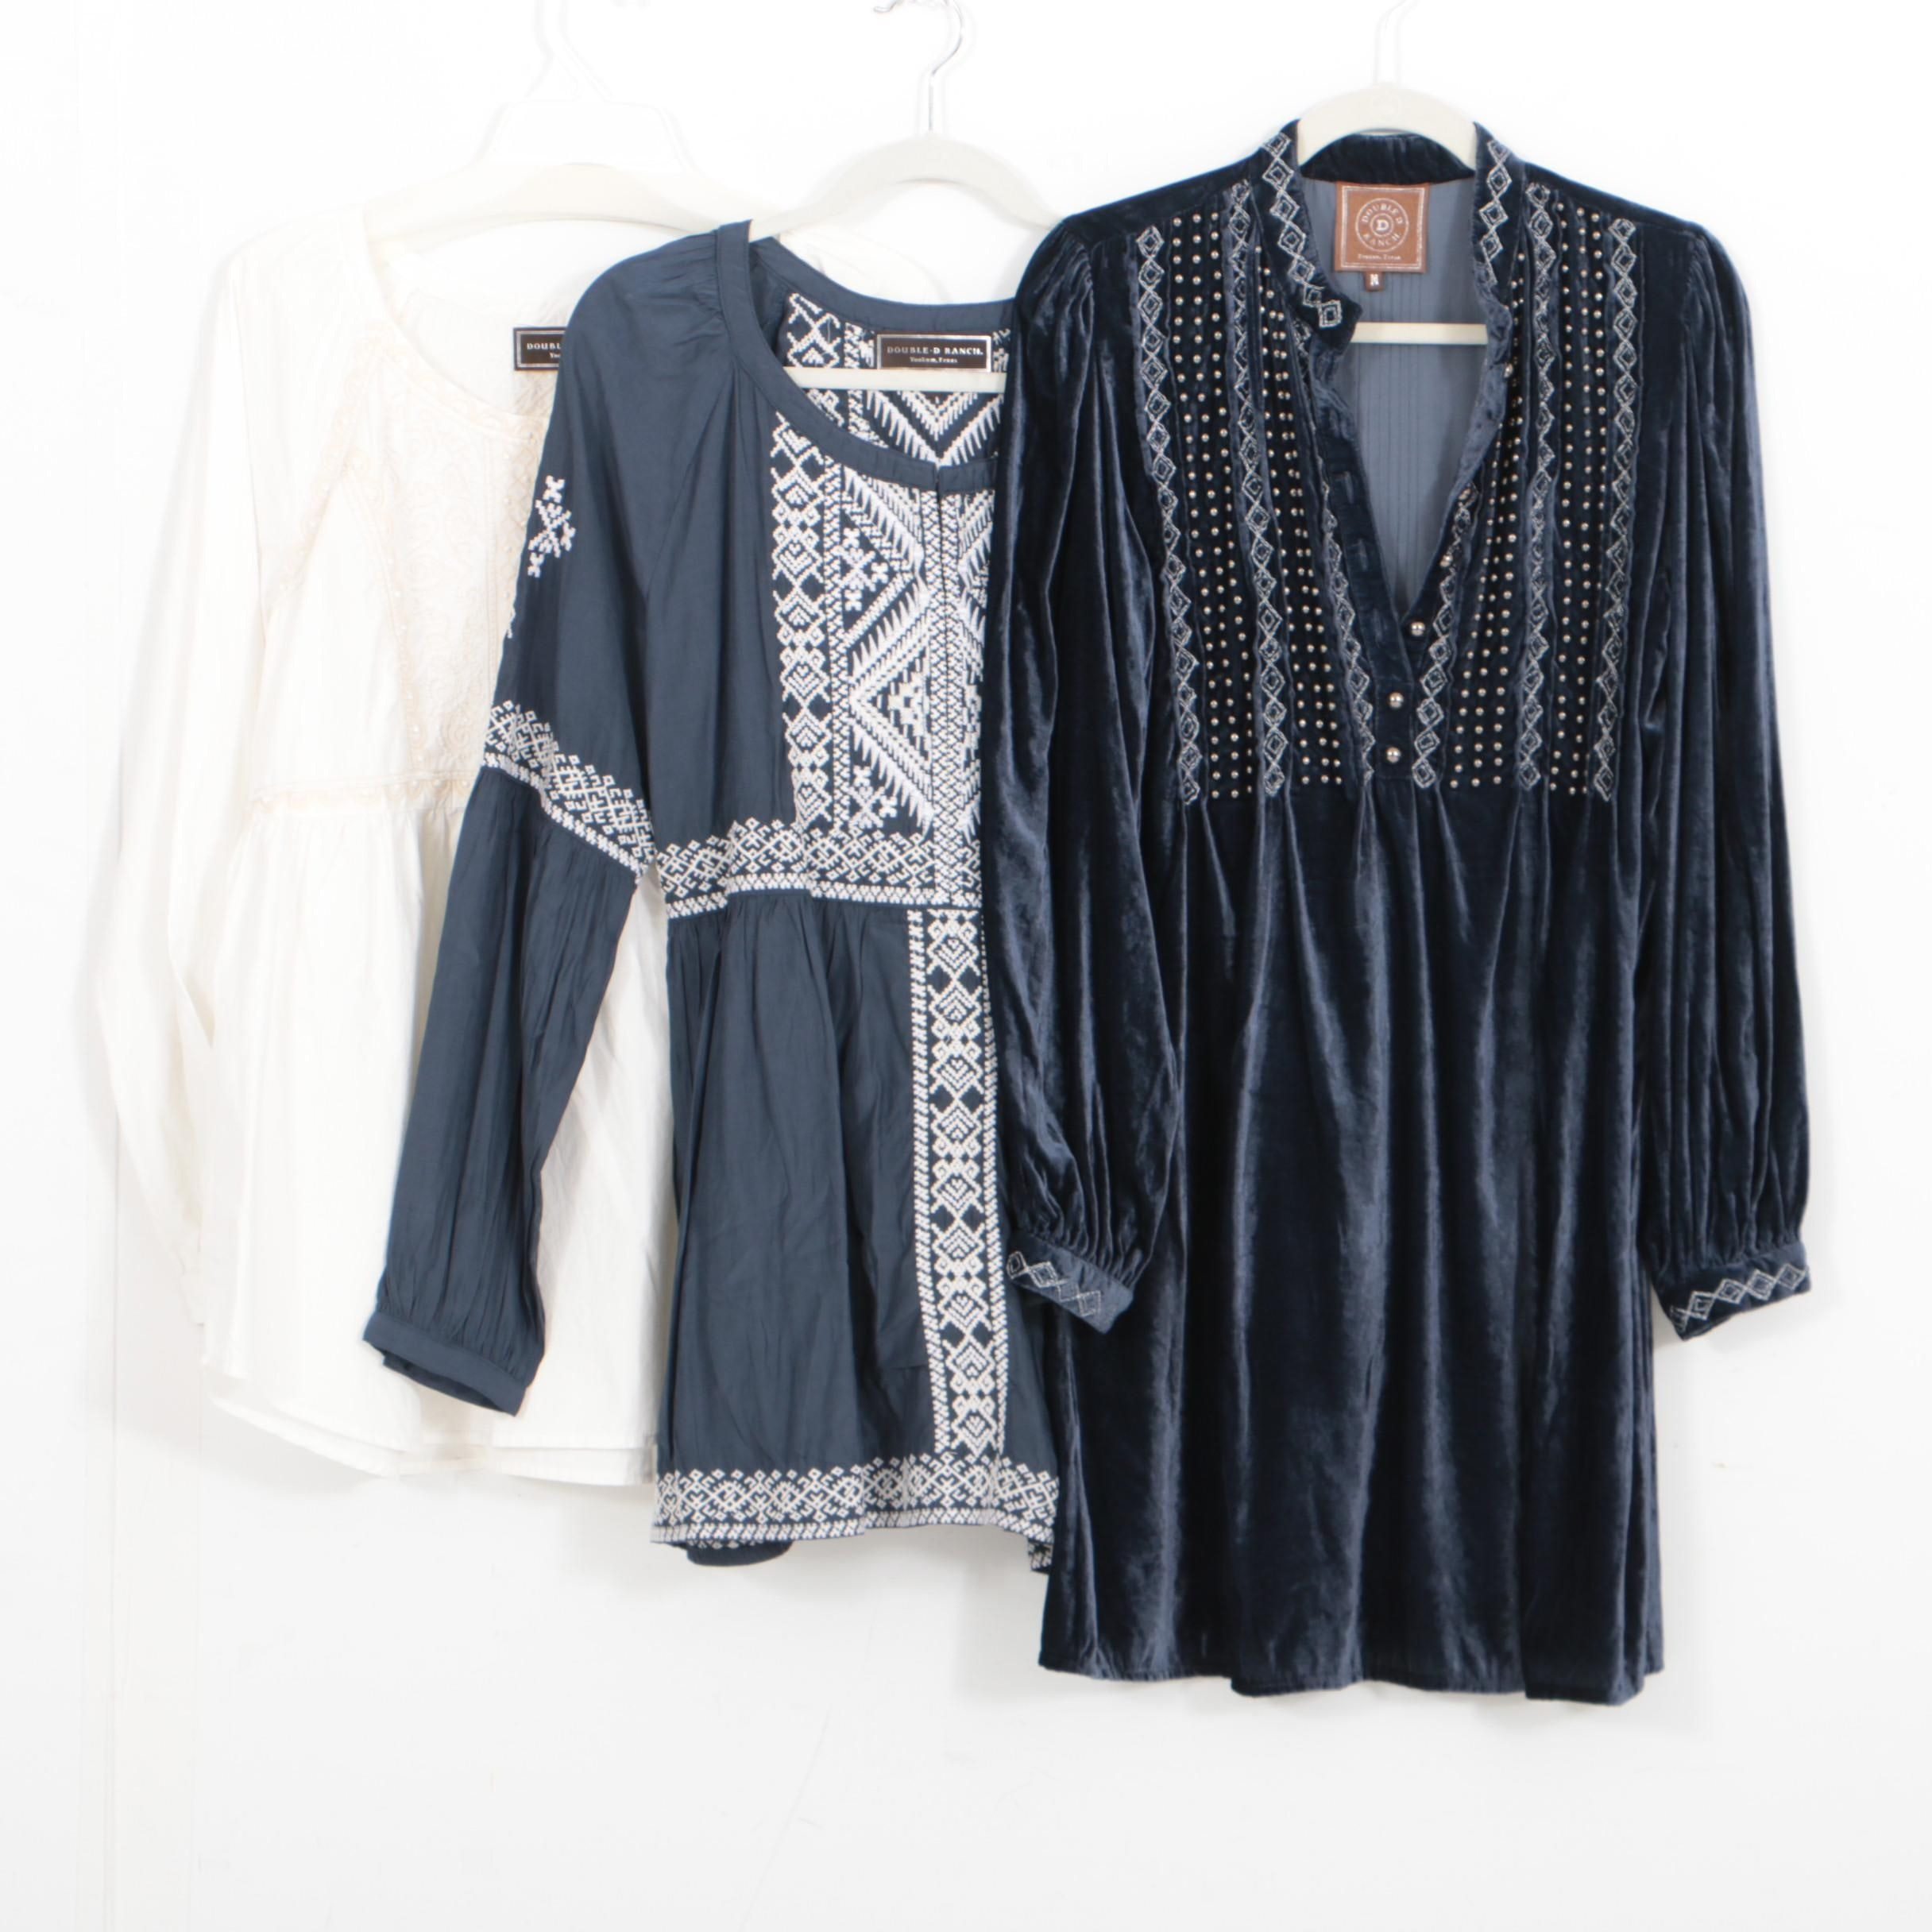 Three Double D Ranch Tunic Tops